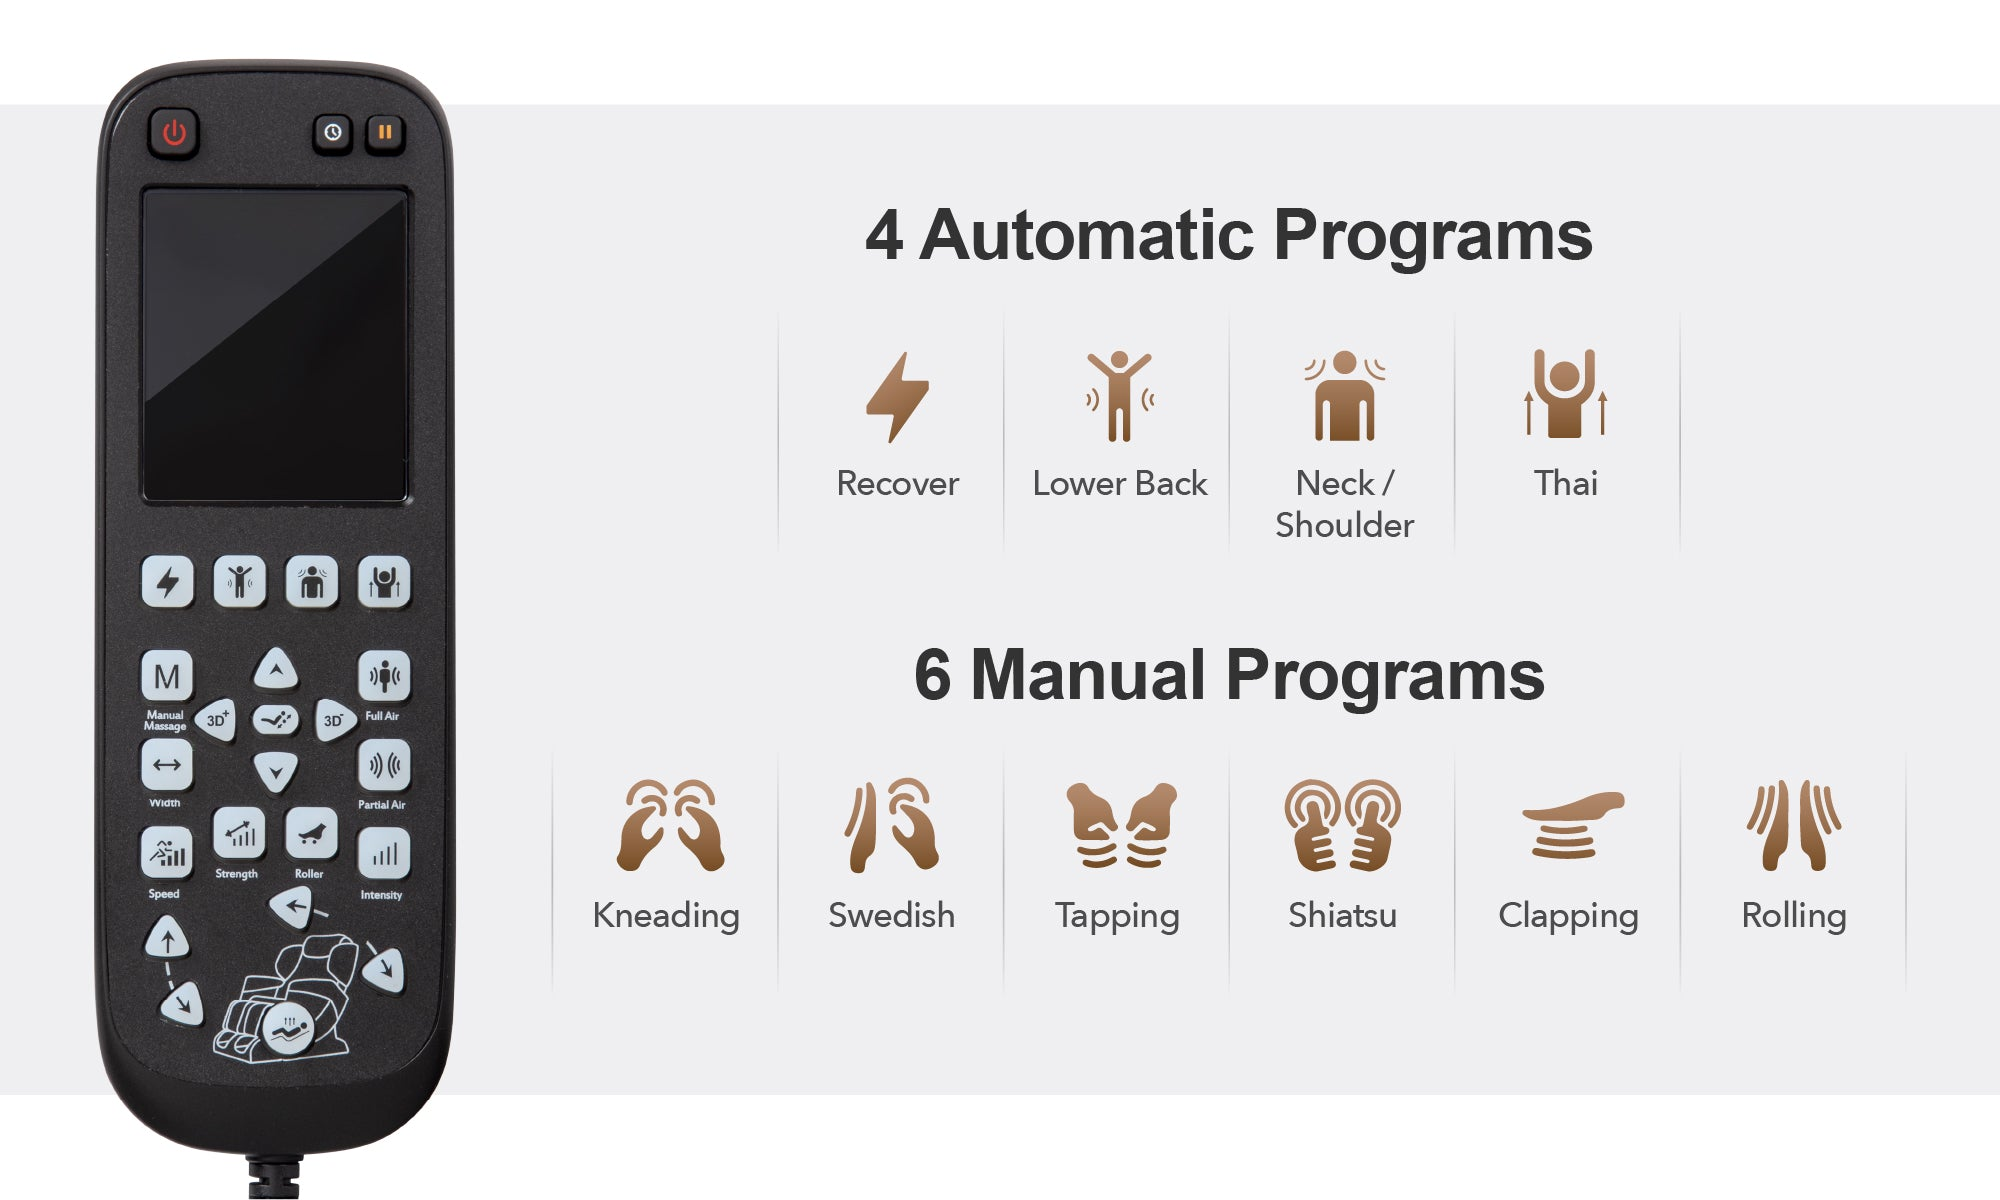 4 Automatic Programs and 6 Manual Programs